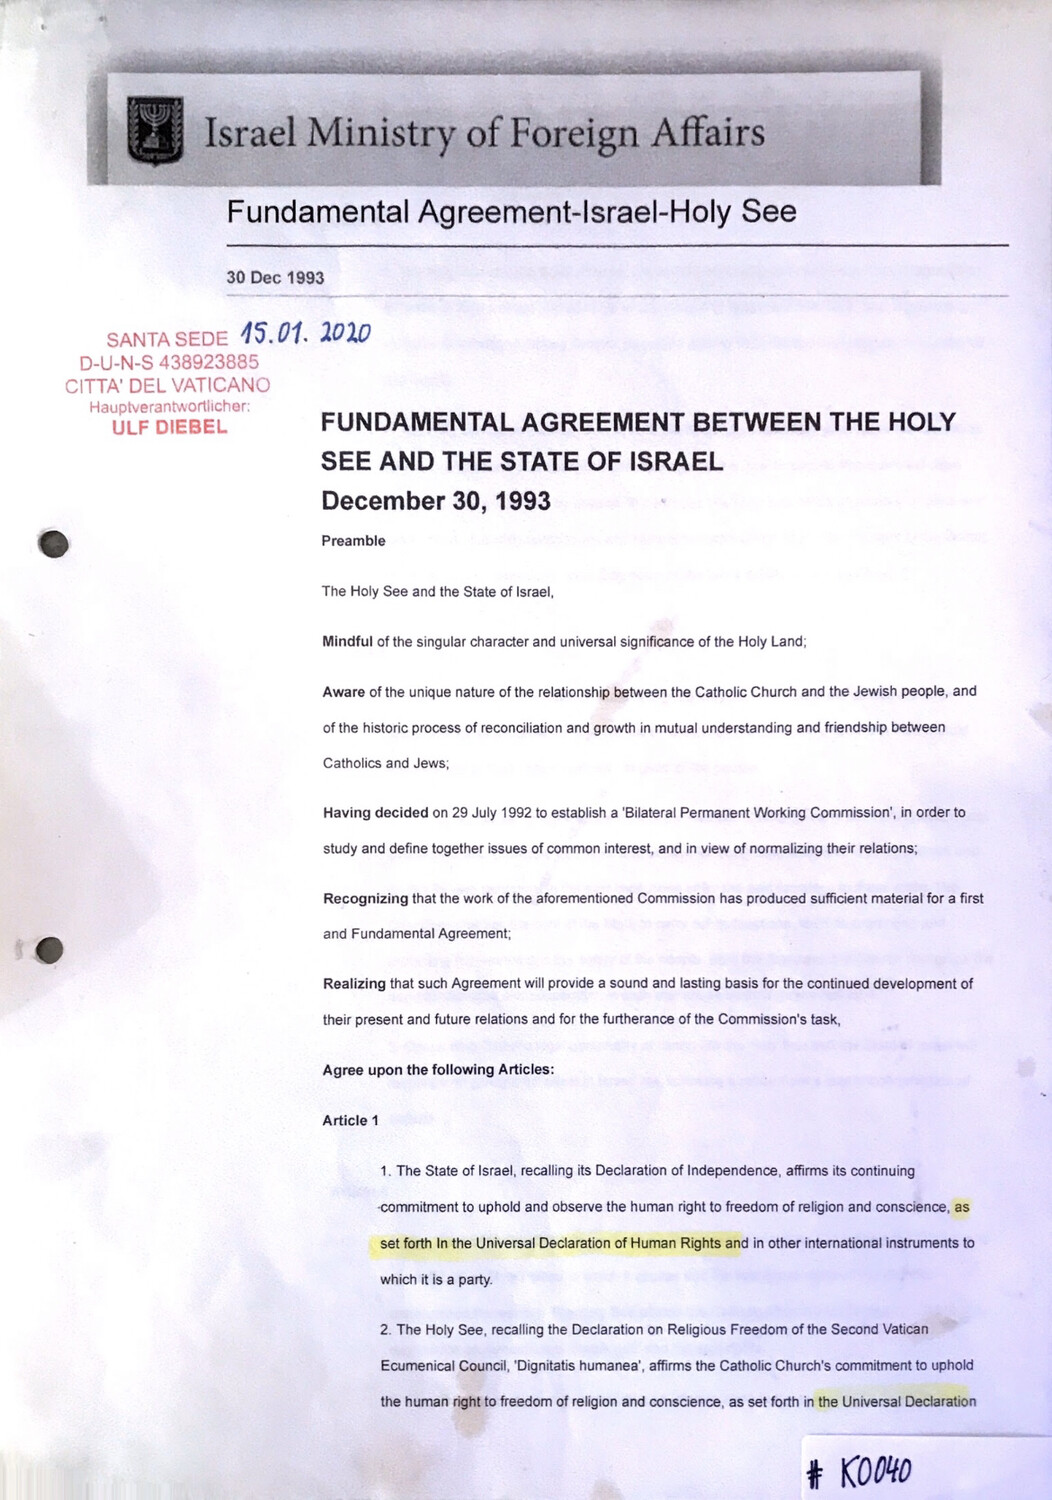 #K0040 l Israel Ministry of Foreign Affairs - Fundamental Agreement between the Holy See and the State of Israel l December 30,1993